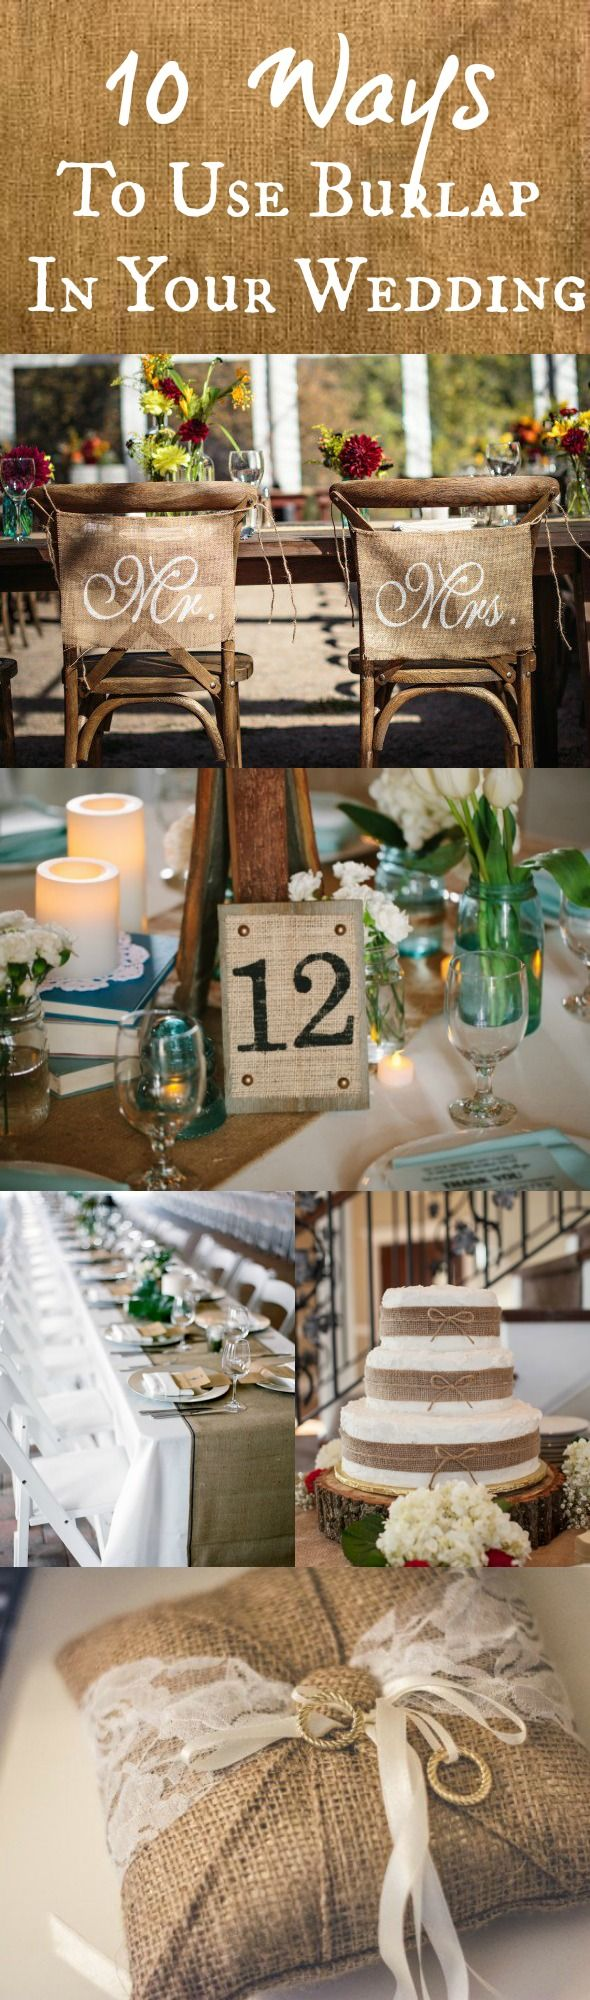 272 best burlap wedding ideas images on pinterest burlap weddings 10 ways to use burlap at your wedding junglespirit Choice Image